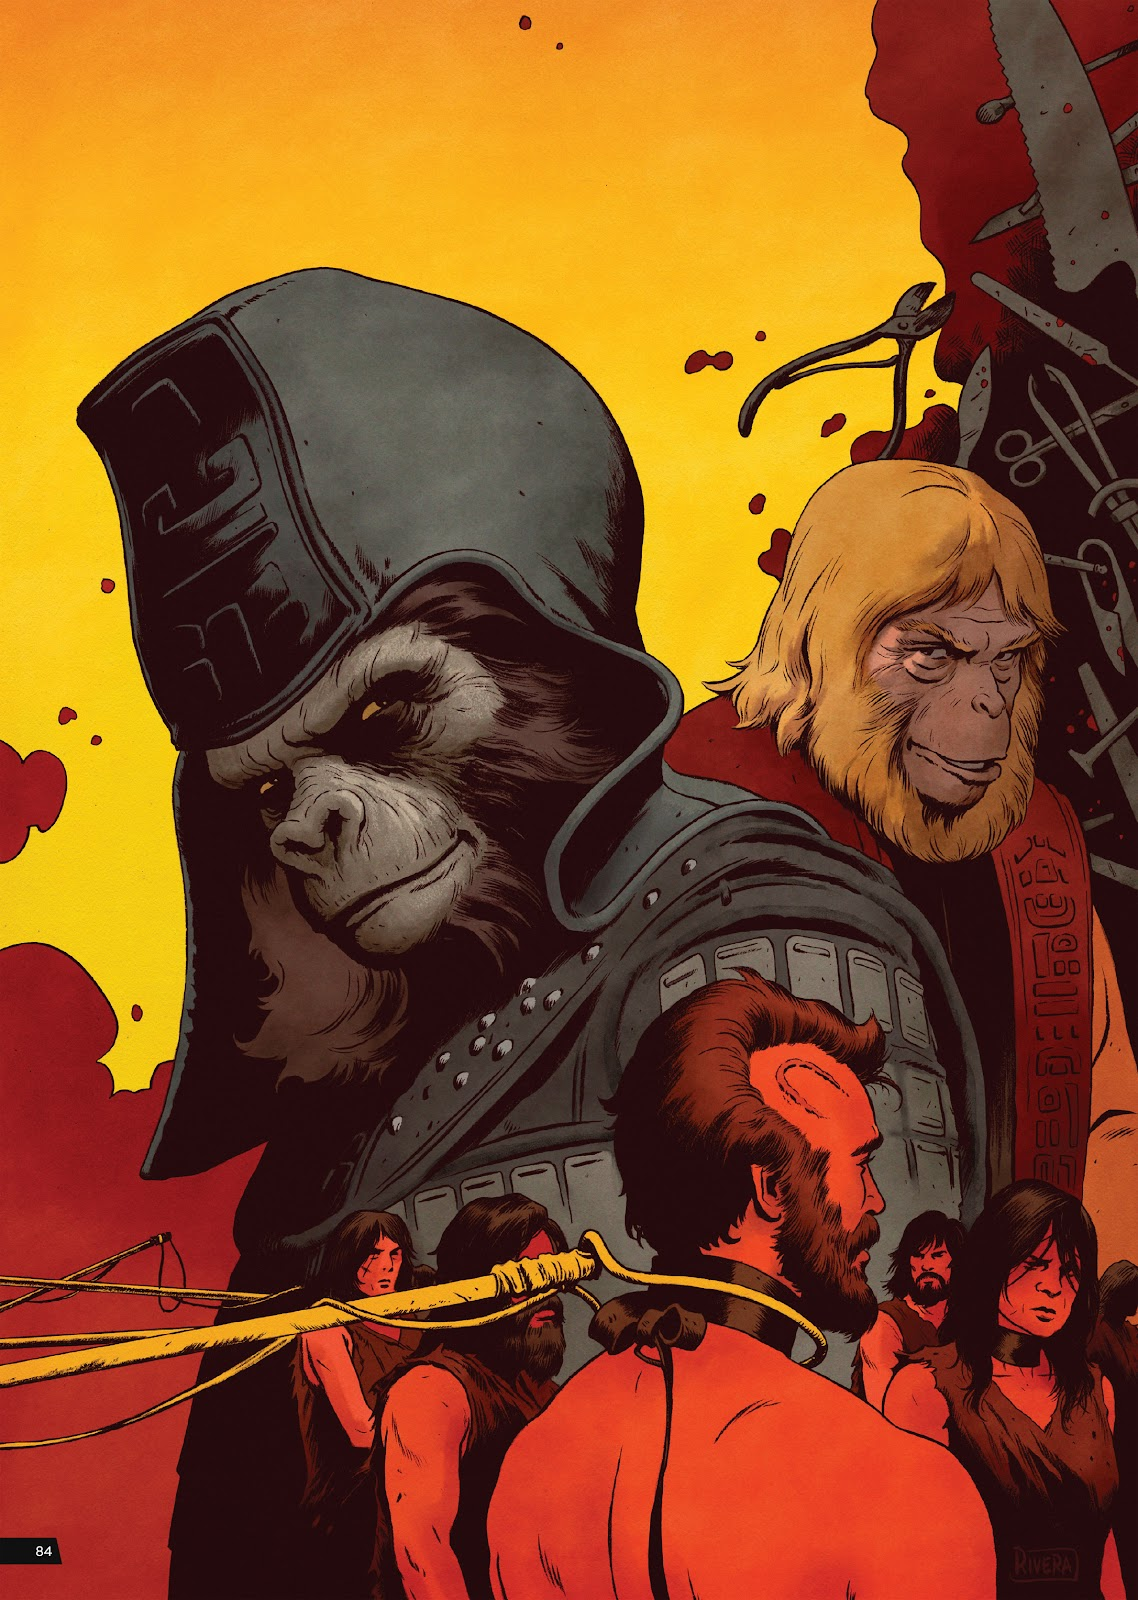 Read online Planet of the Apes Artist Tribute comic -  Issue # TPB - 84